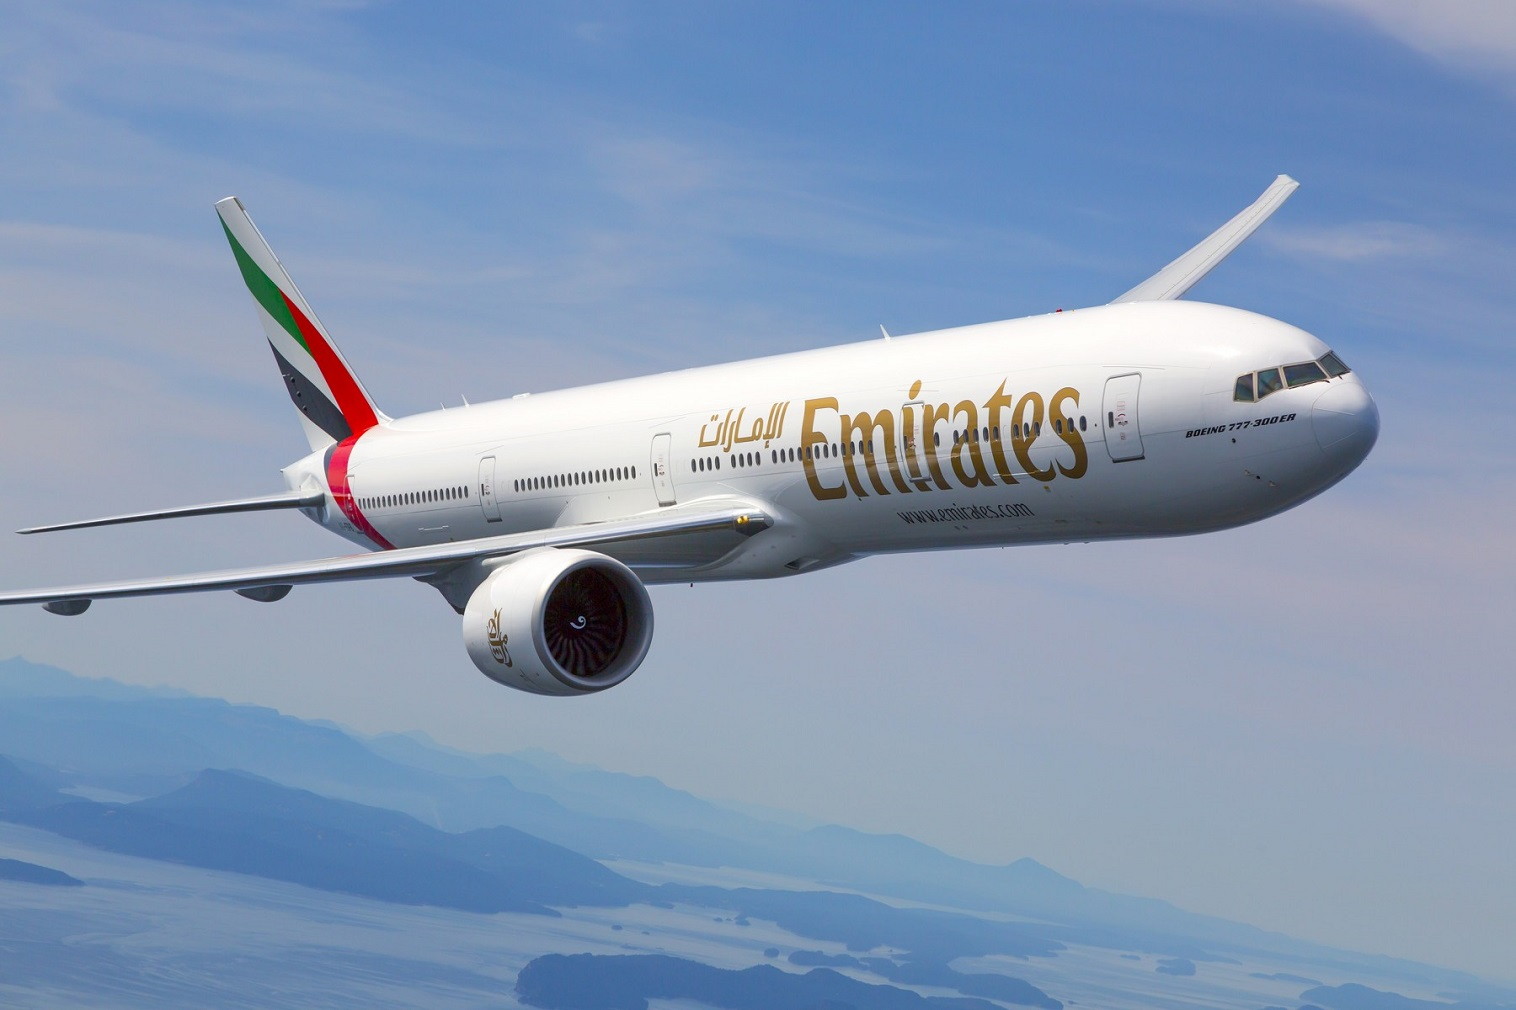 The Milan-New York JFK flight will be an extension to Emirates' existing flights to Milan EK205, operated by the Boeing 777-300 ER, offering 8 seats in First Class, 42 lie-flat seats in Business and 304 ergonomically designed seats in Economy class.